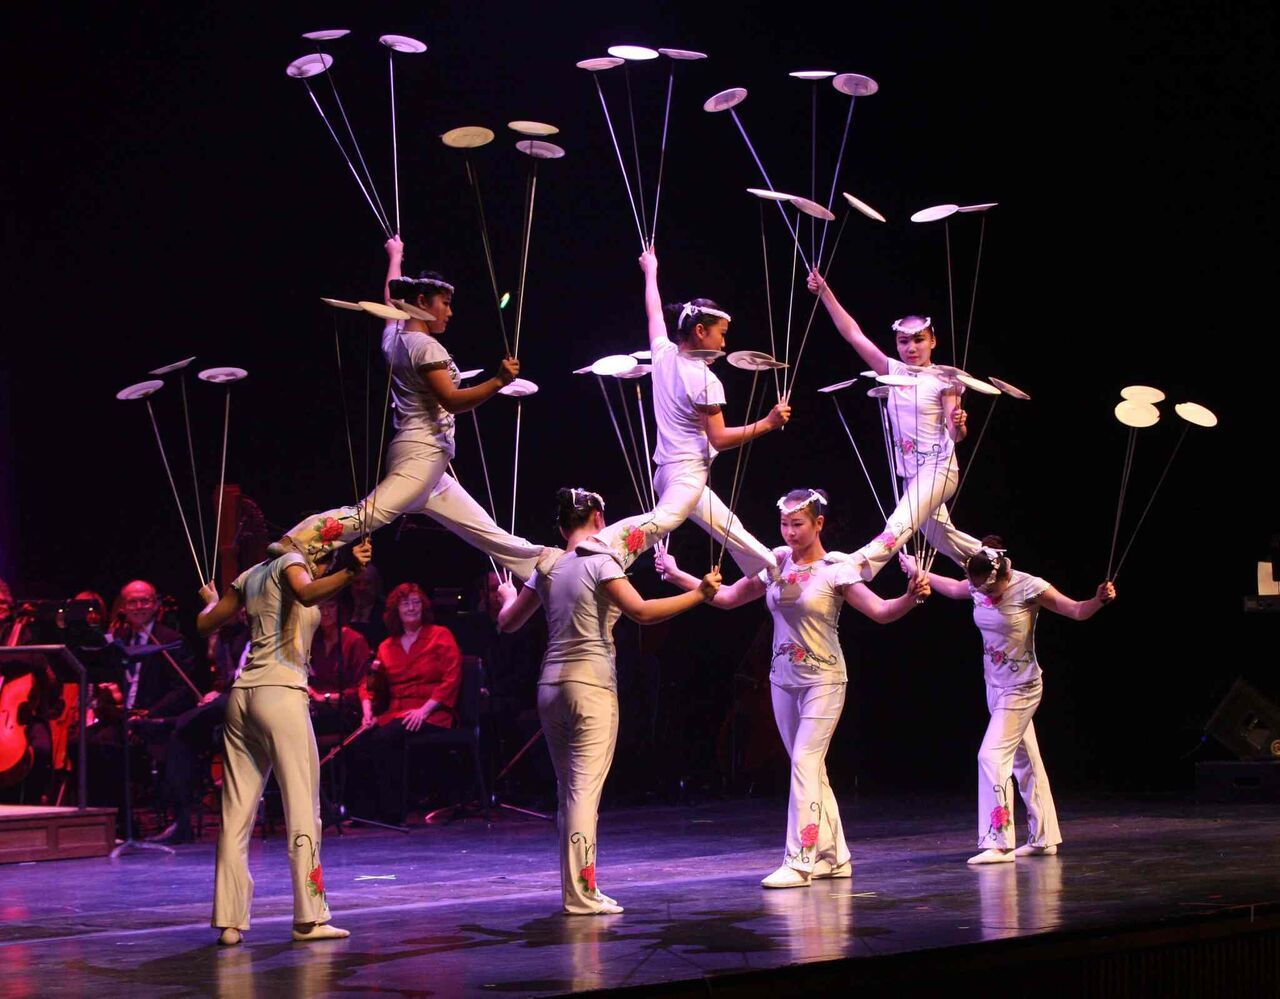 The Peking Acrobats perform 'Let the Spinning Plates Spin', precariously balancing dishes in time with the music.